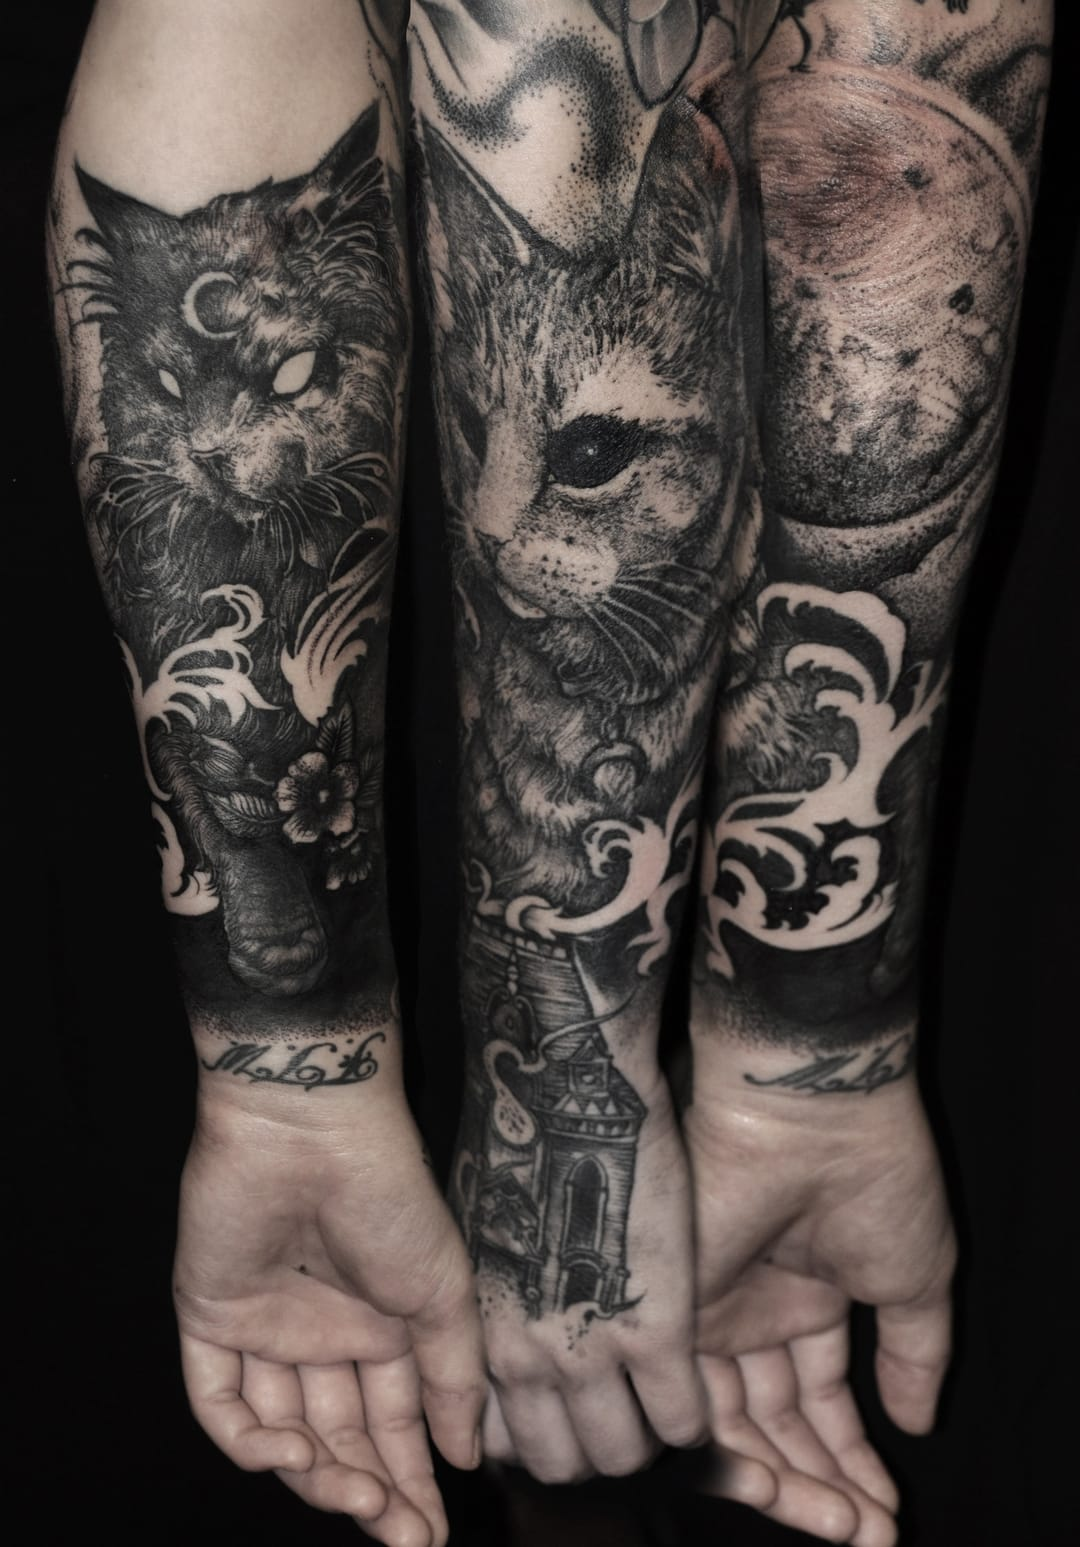 Tattoo Artists You Really Should Get to Know: Róbert Borbás